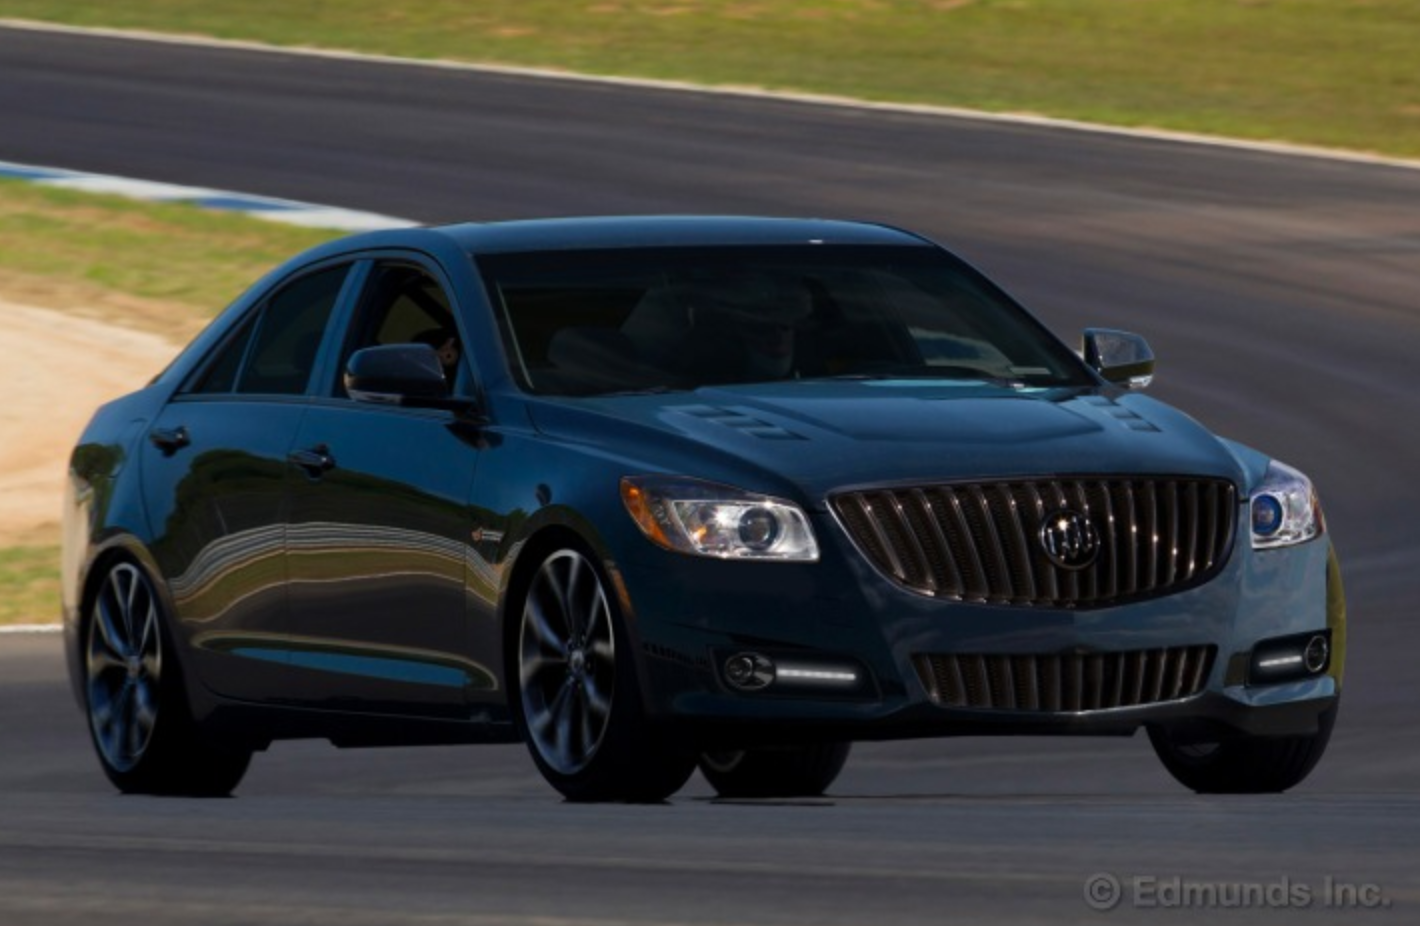 2017 Buick Grand National Gnx Specs And Price The Ful Stylish Sedan Like Will Be A Very Good Option To Have